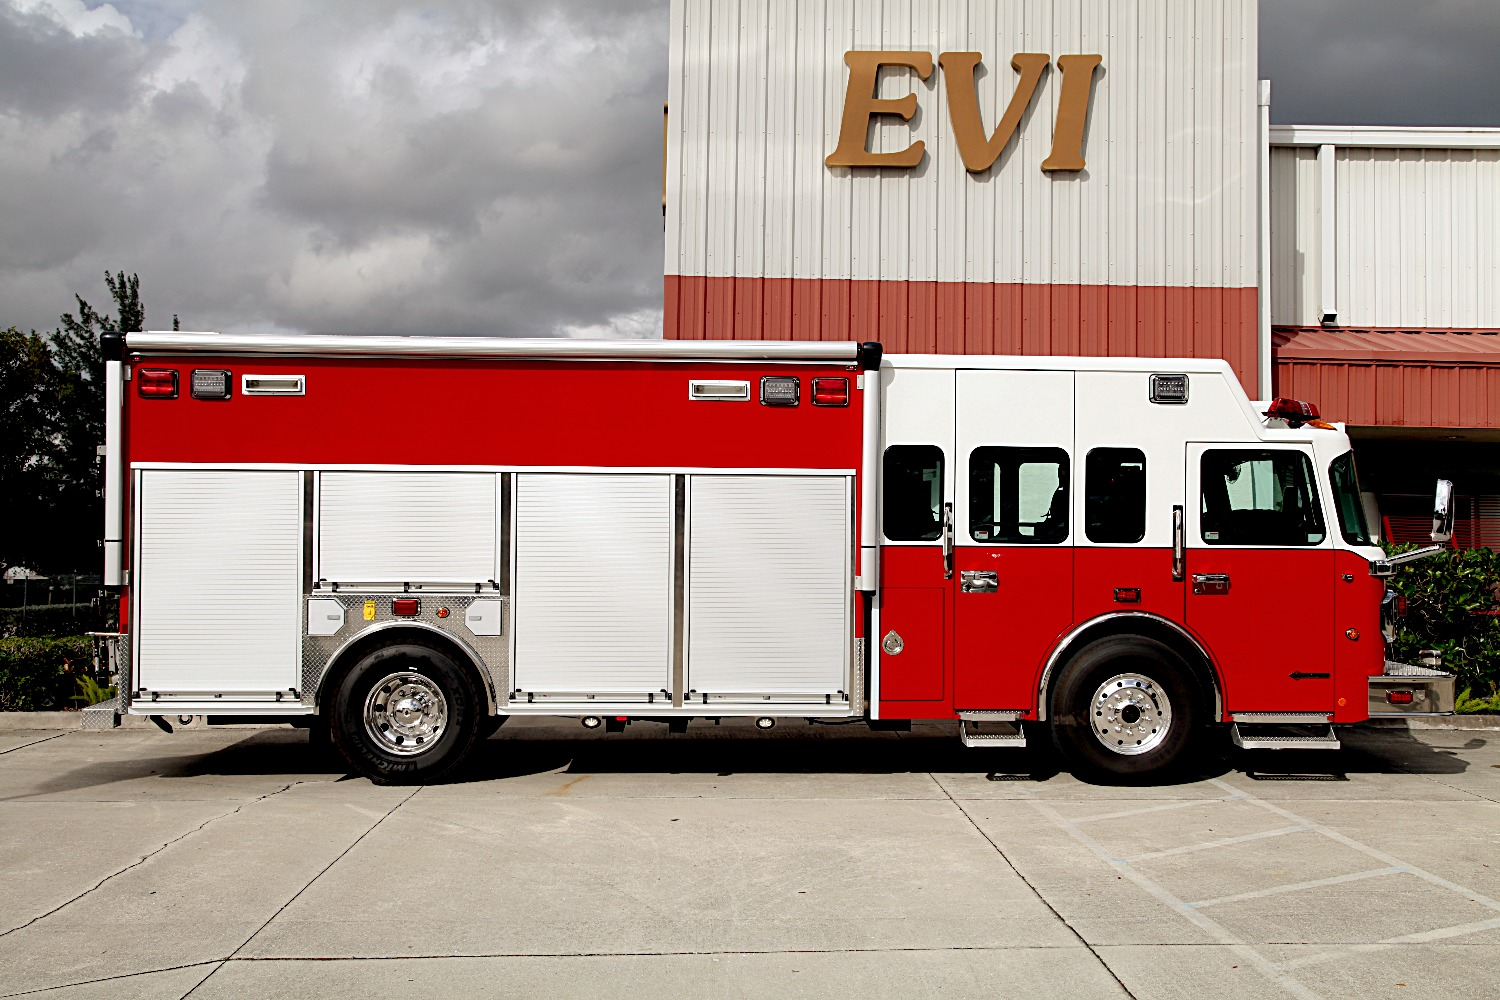 EVI Medium Rescue Truck